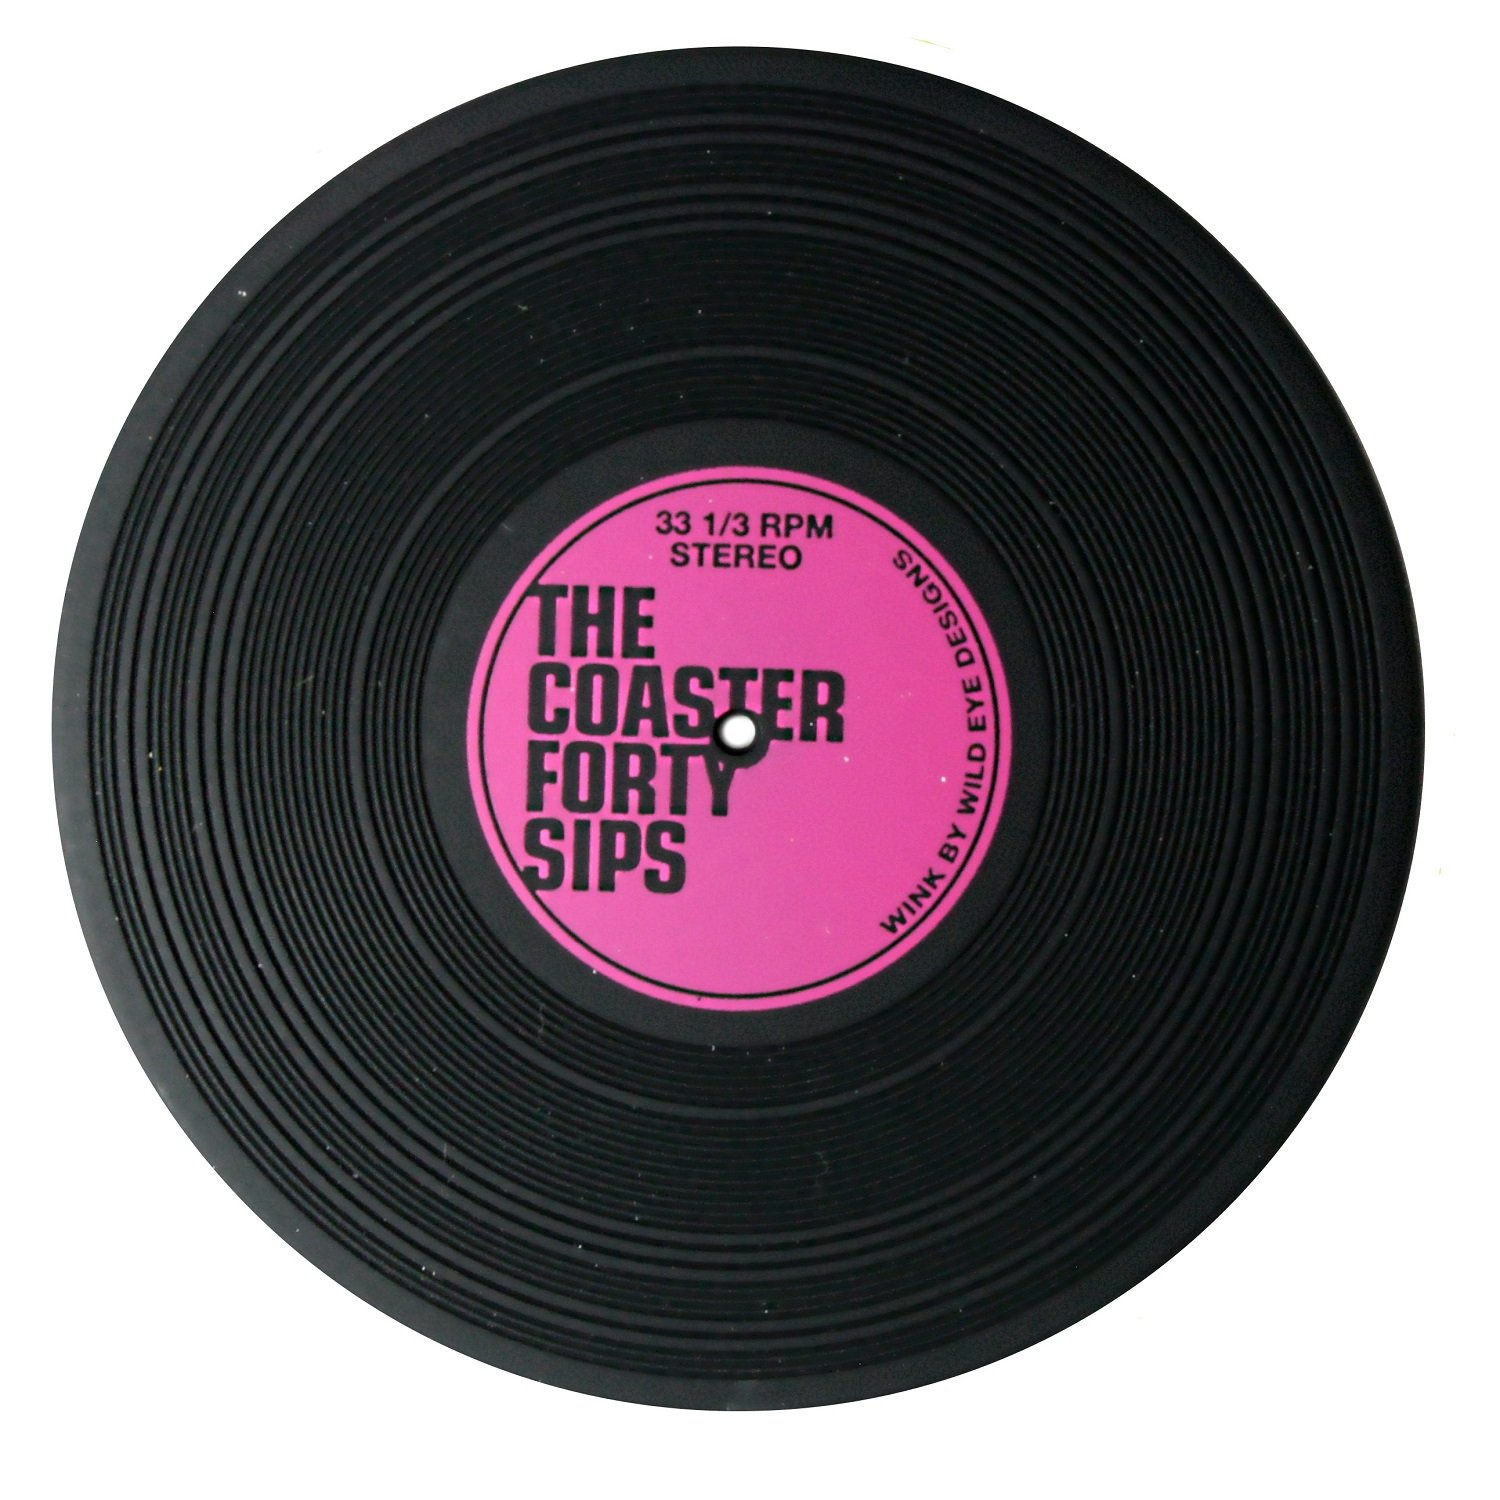 Wild Eye Designs The Coaster Forty Sips Vinyl Record Coaster Set of 2